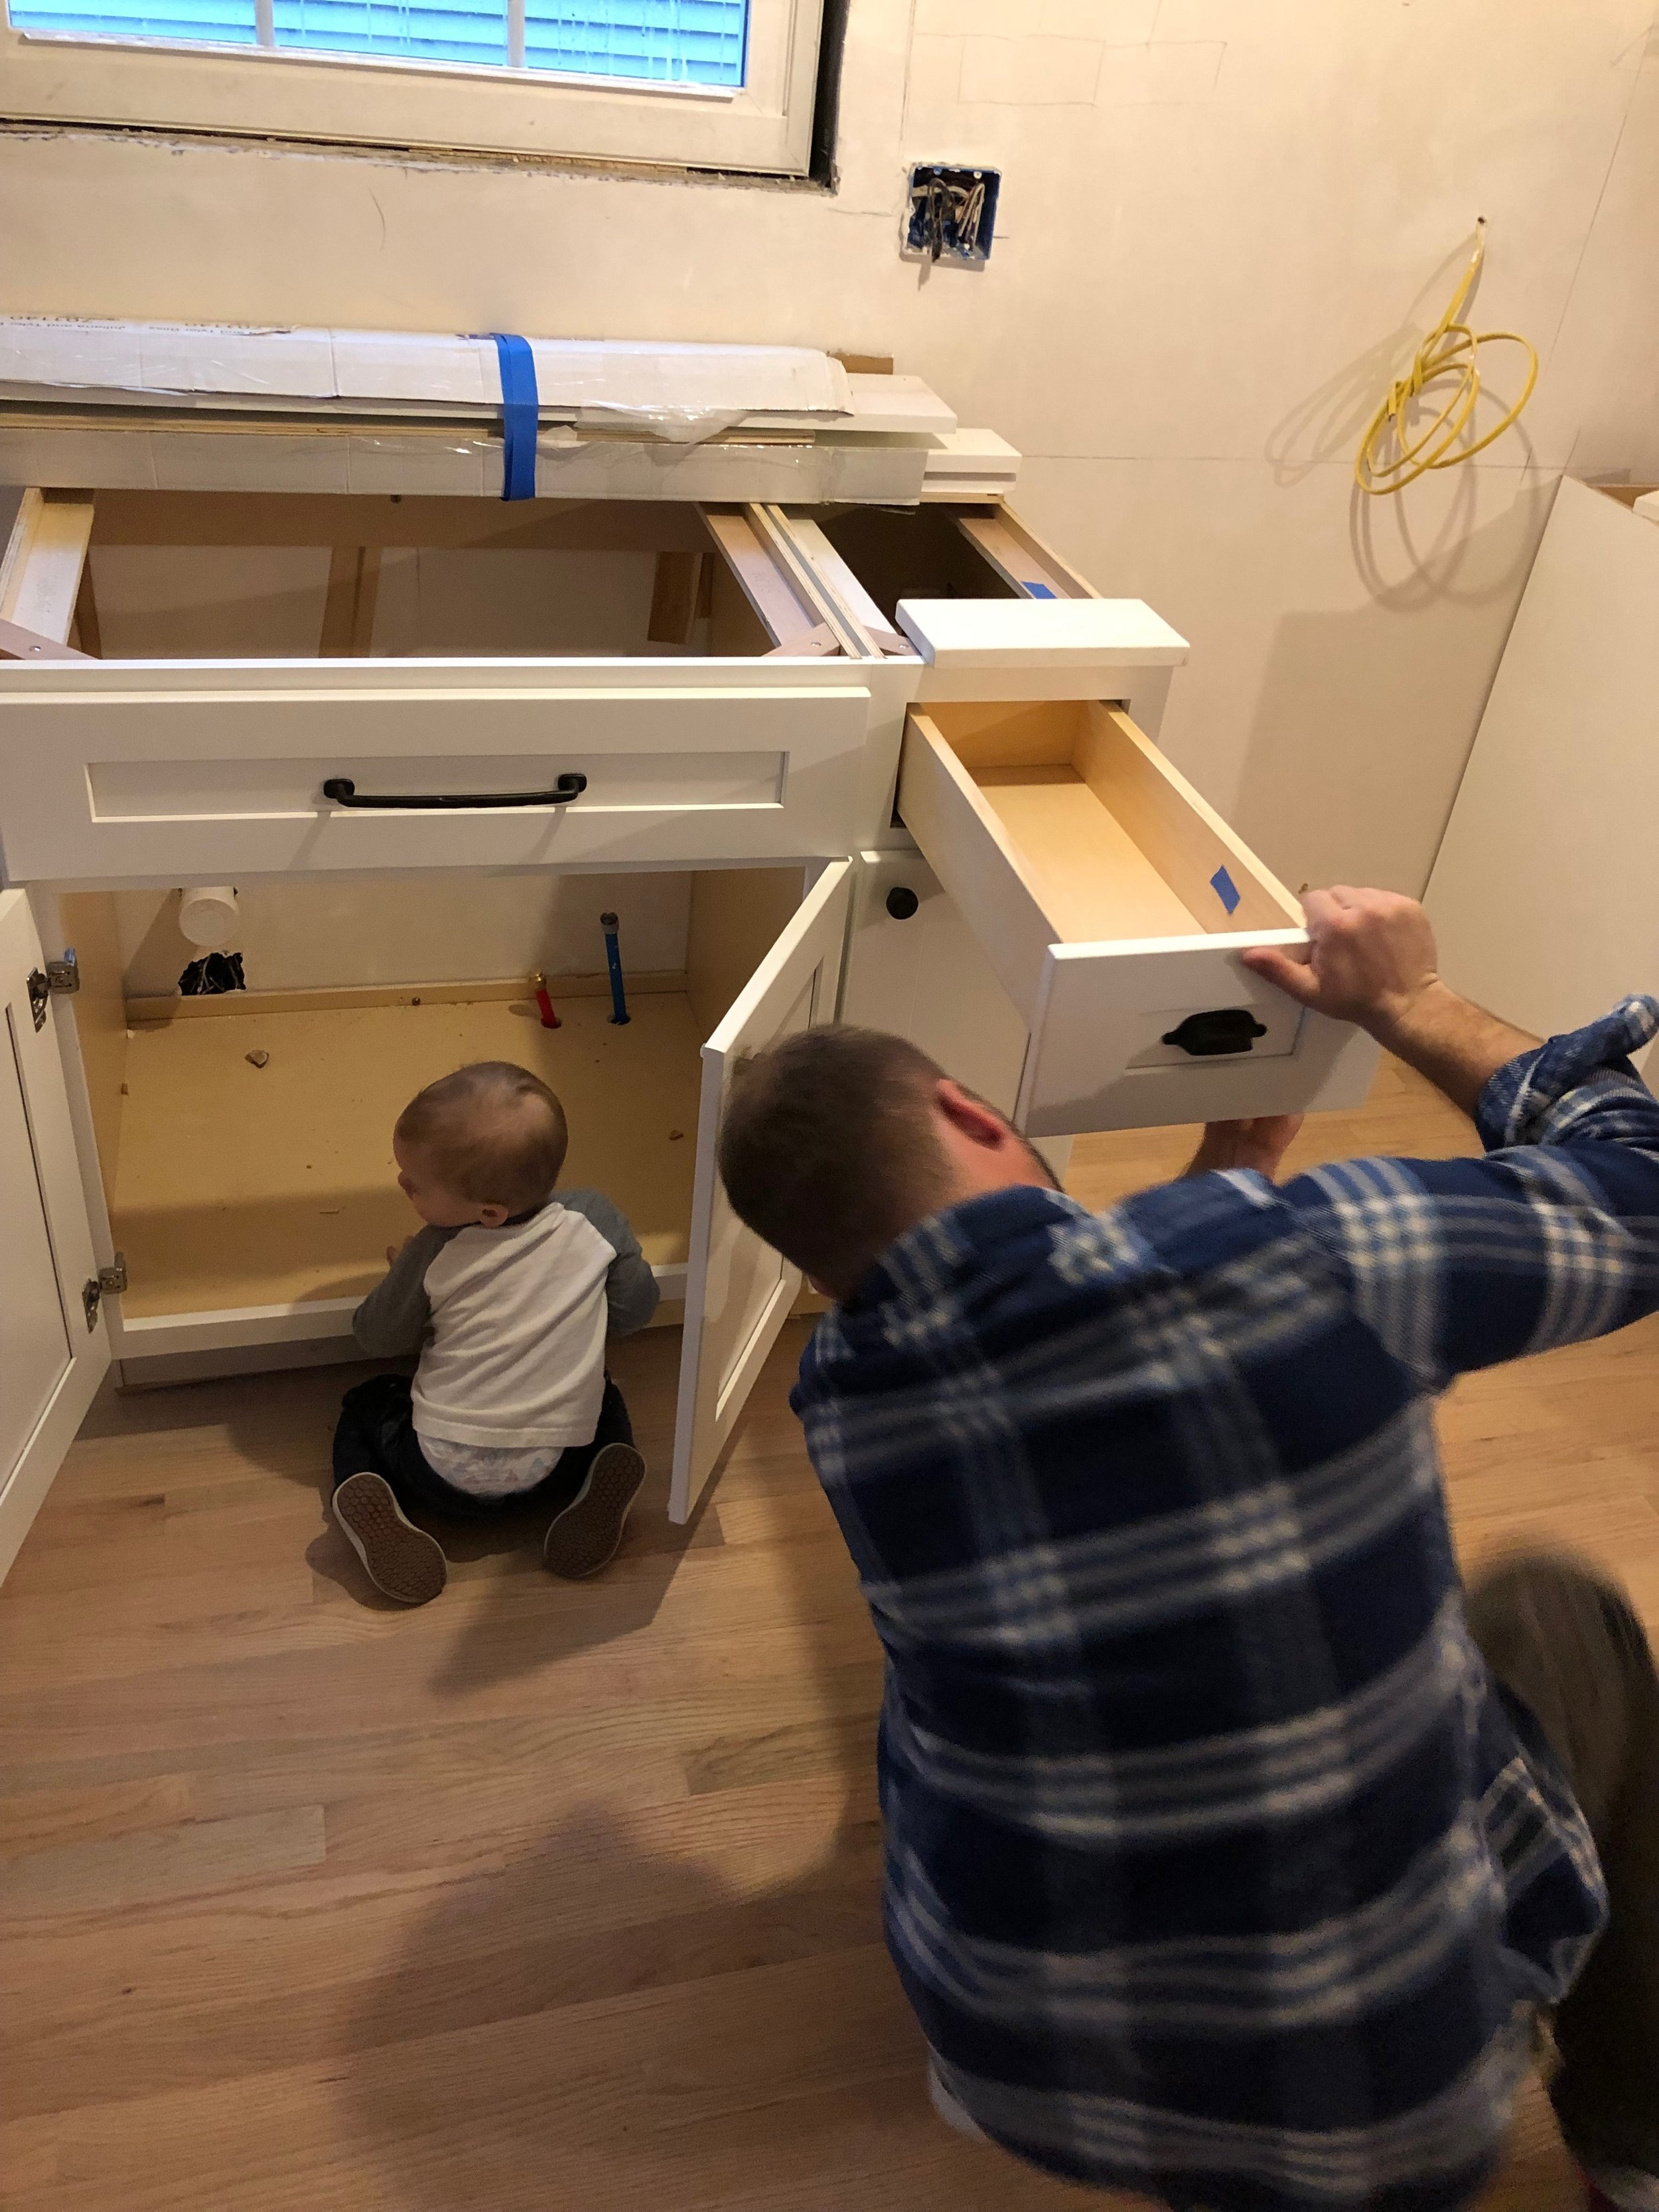 One of our apprentices learning how to adjust cabinet doors and drawers